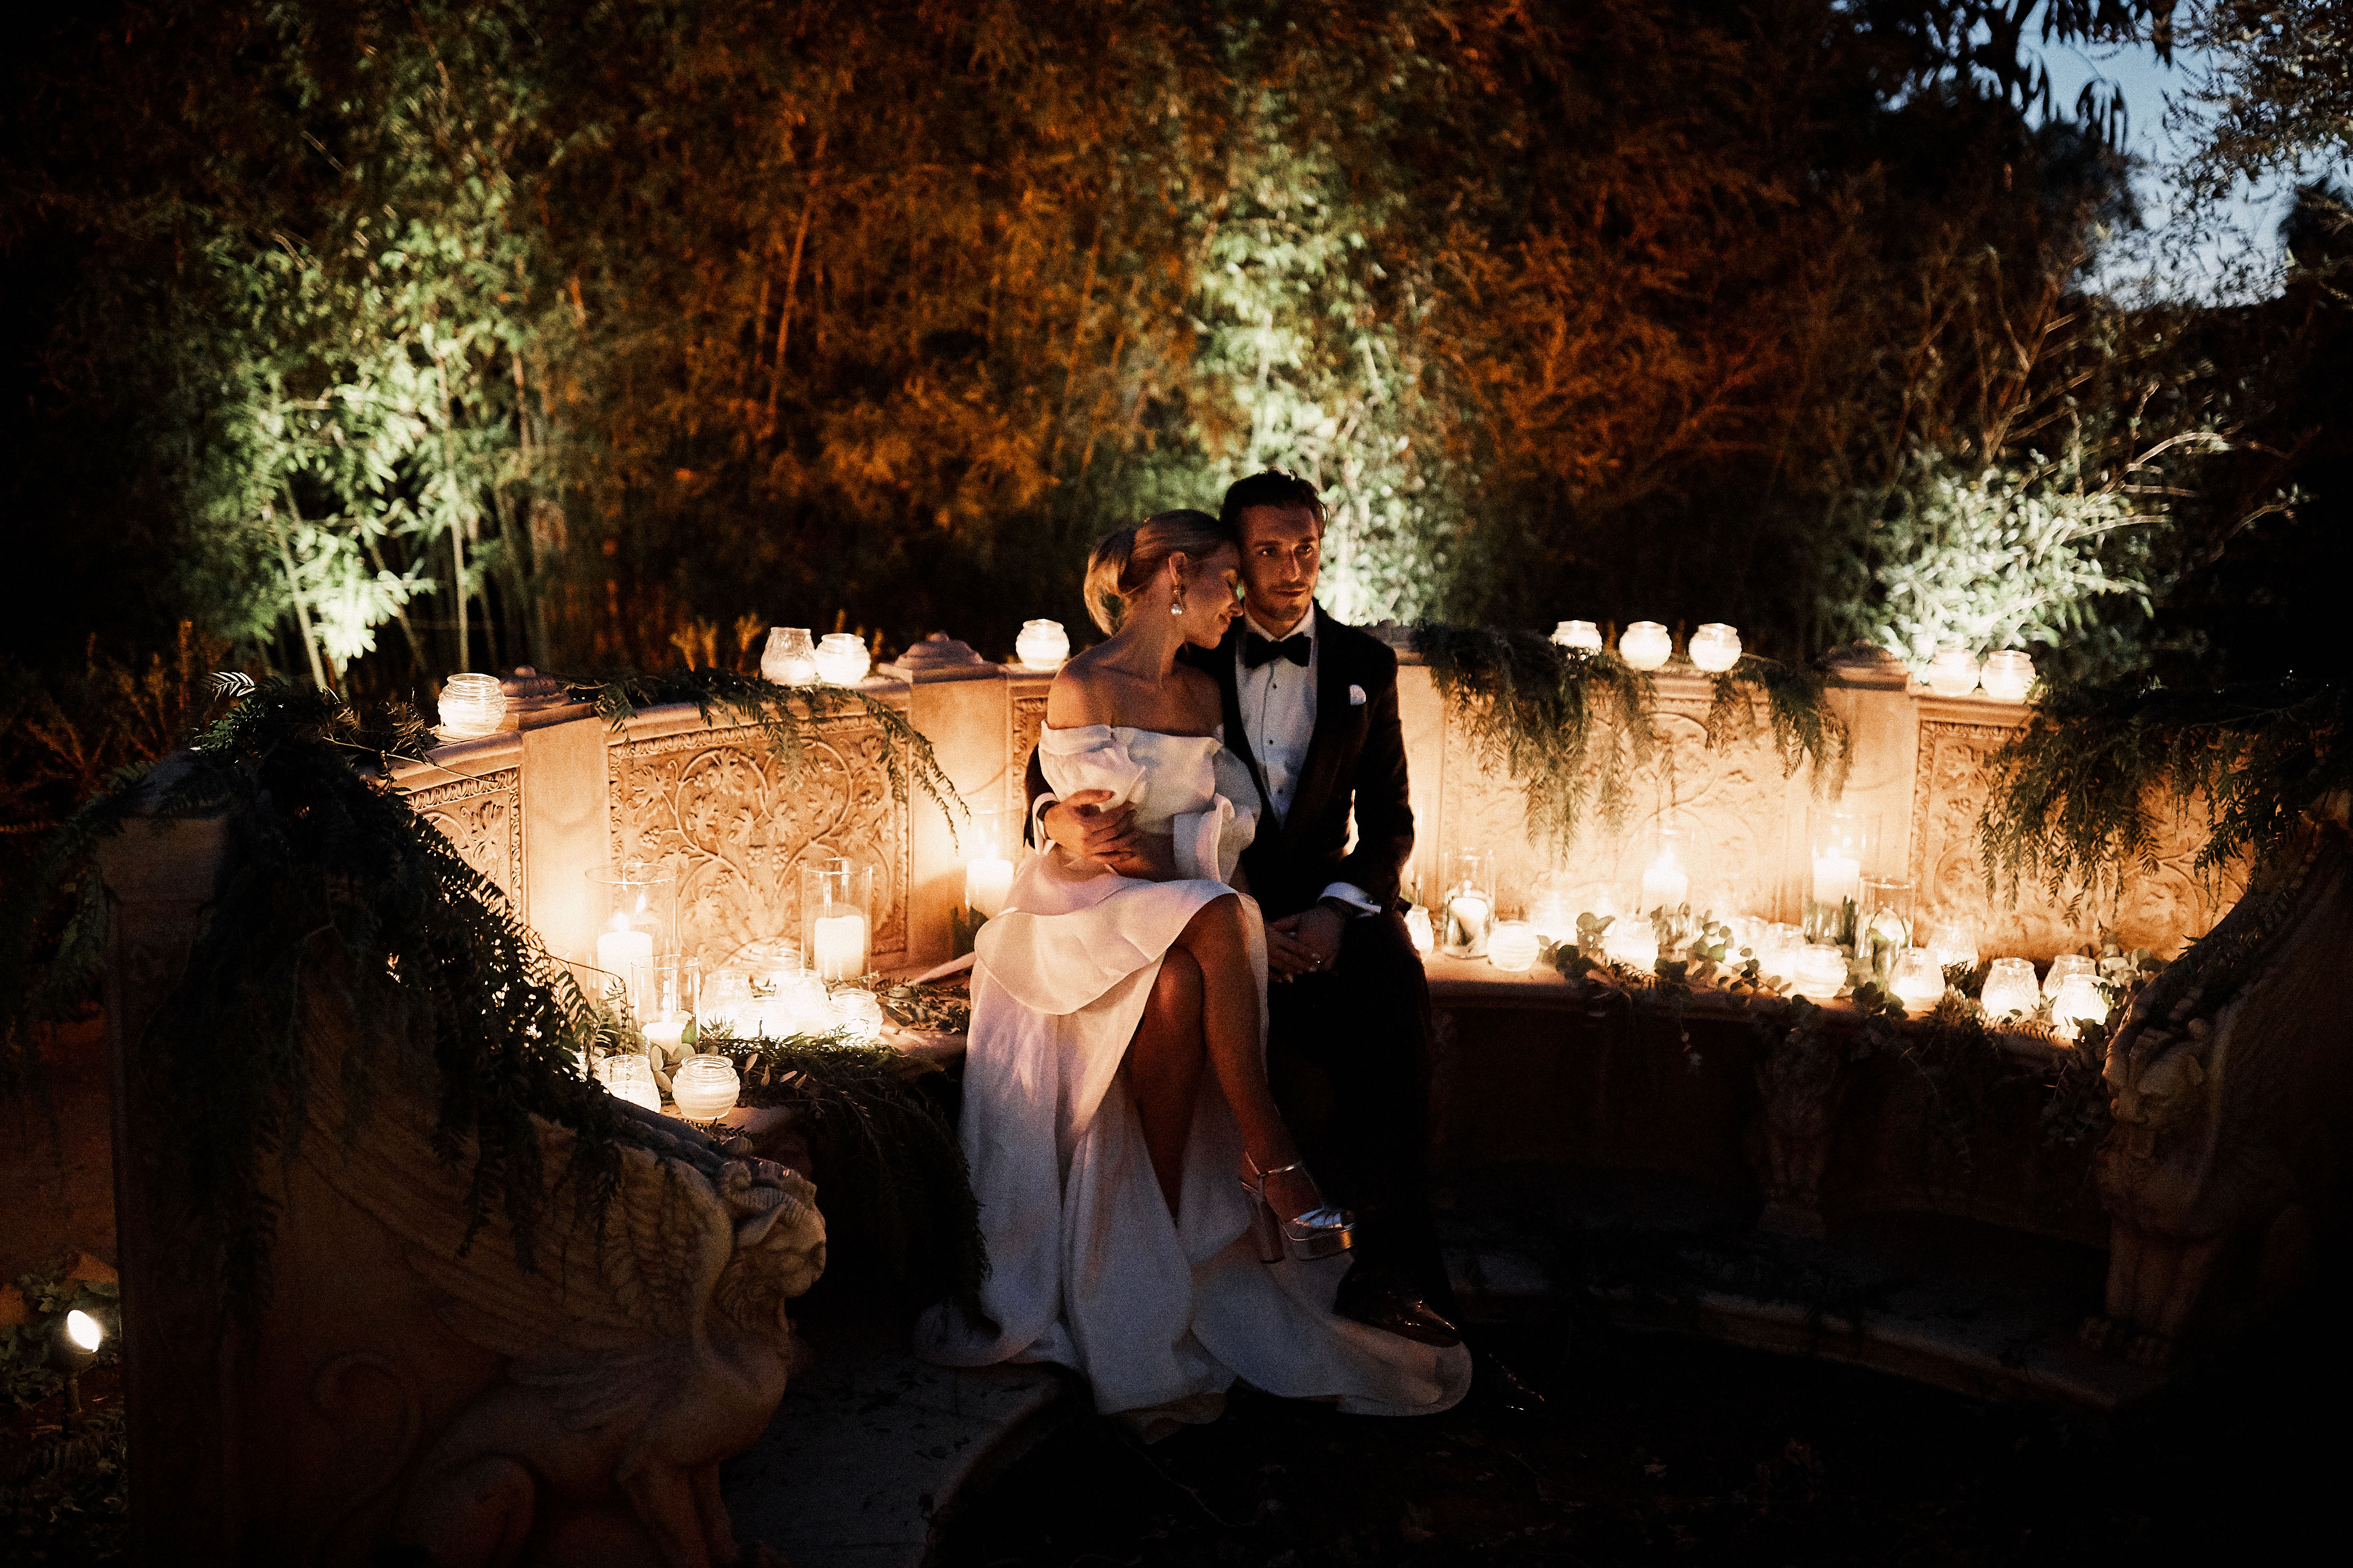 karolina sorab wedding couple hugging surrounded by candles